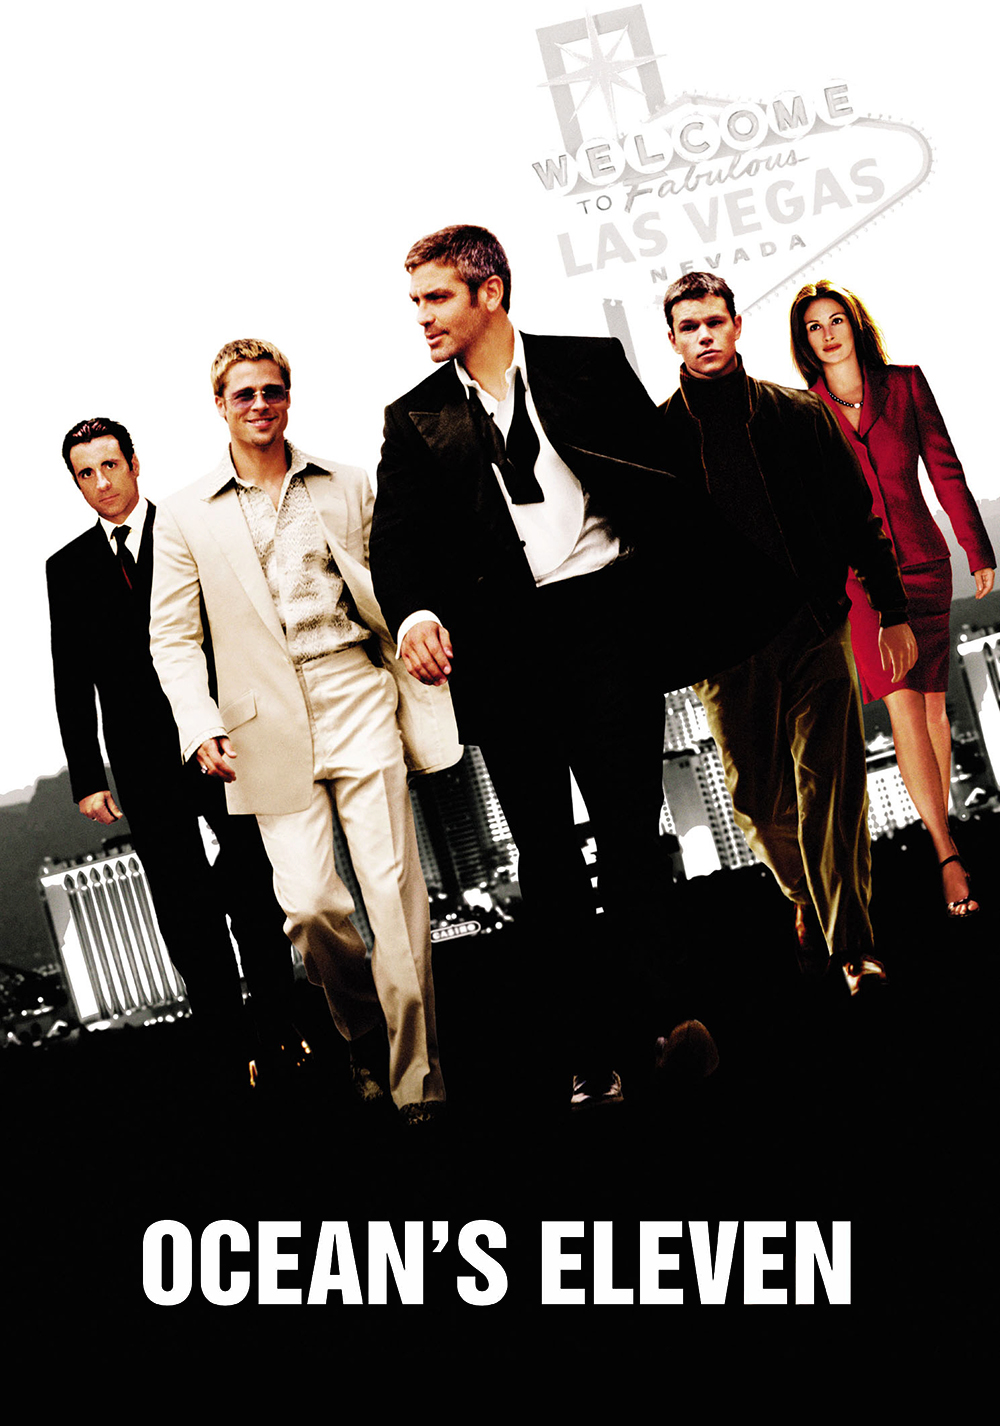 OCEANS ELEVEN (2001) TAMIL DUBBED HD